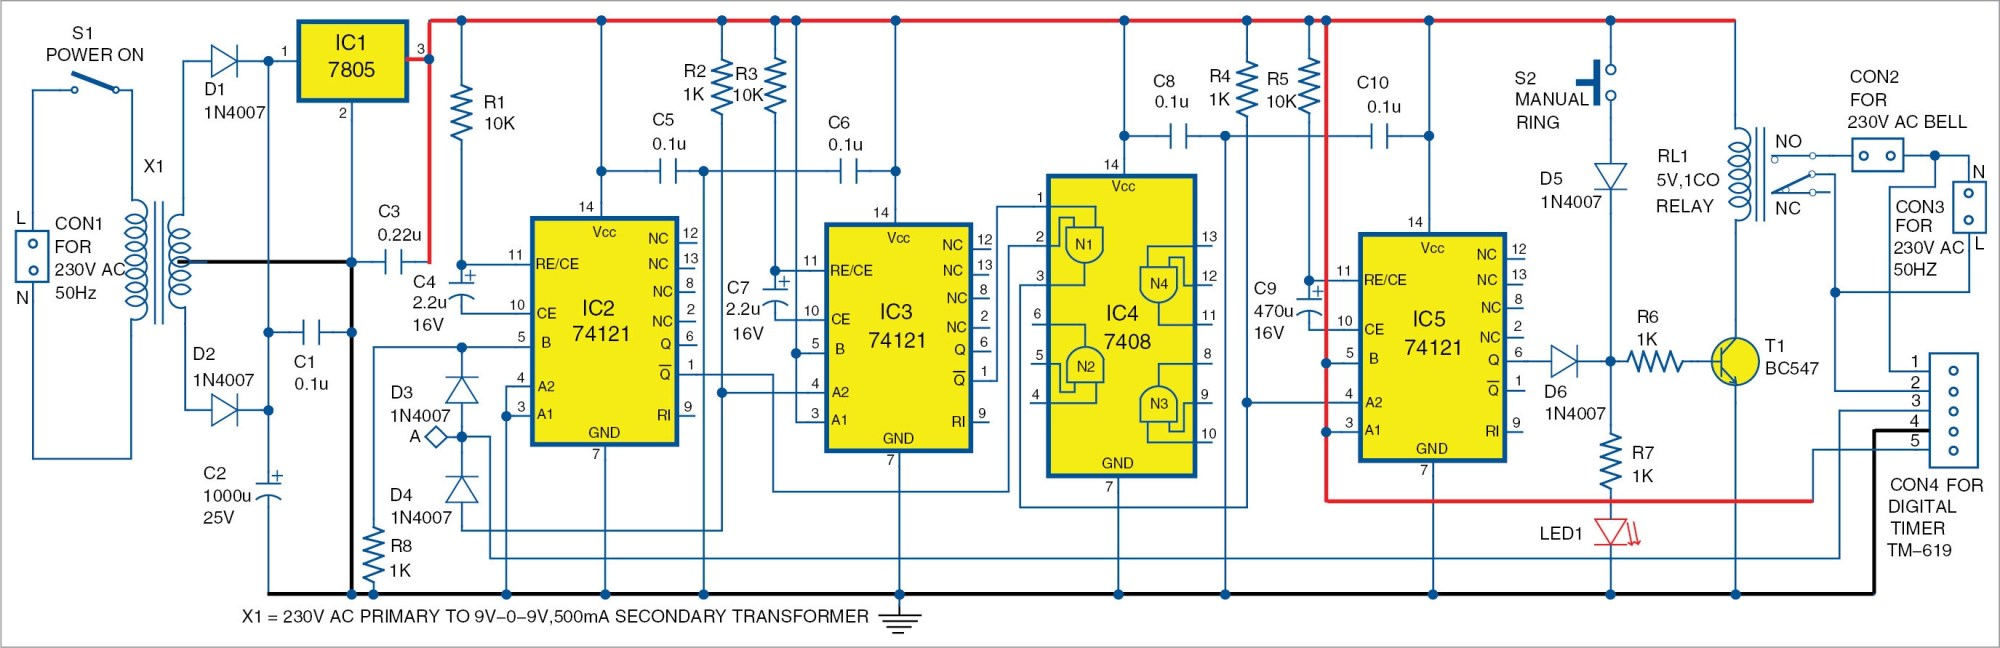 hight resolution of electronic bell circuit diagram